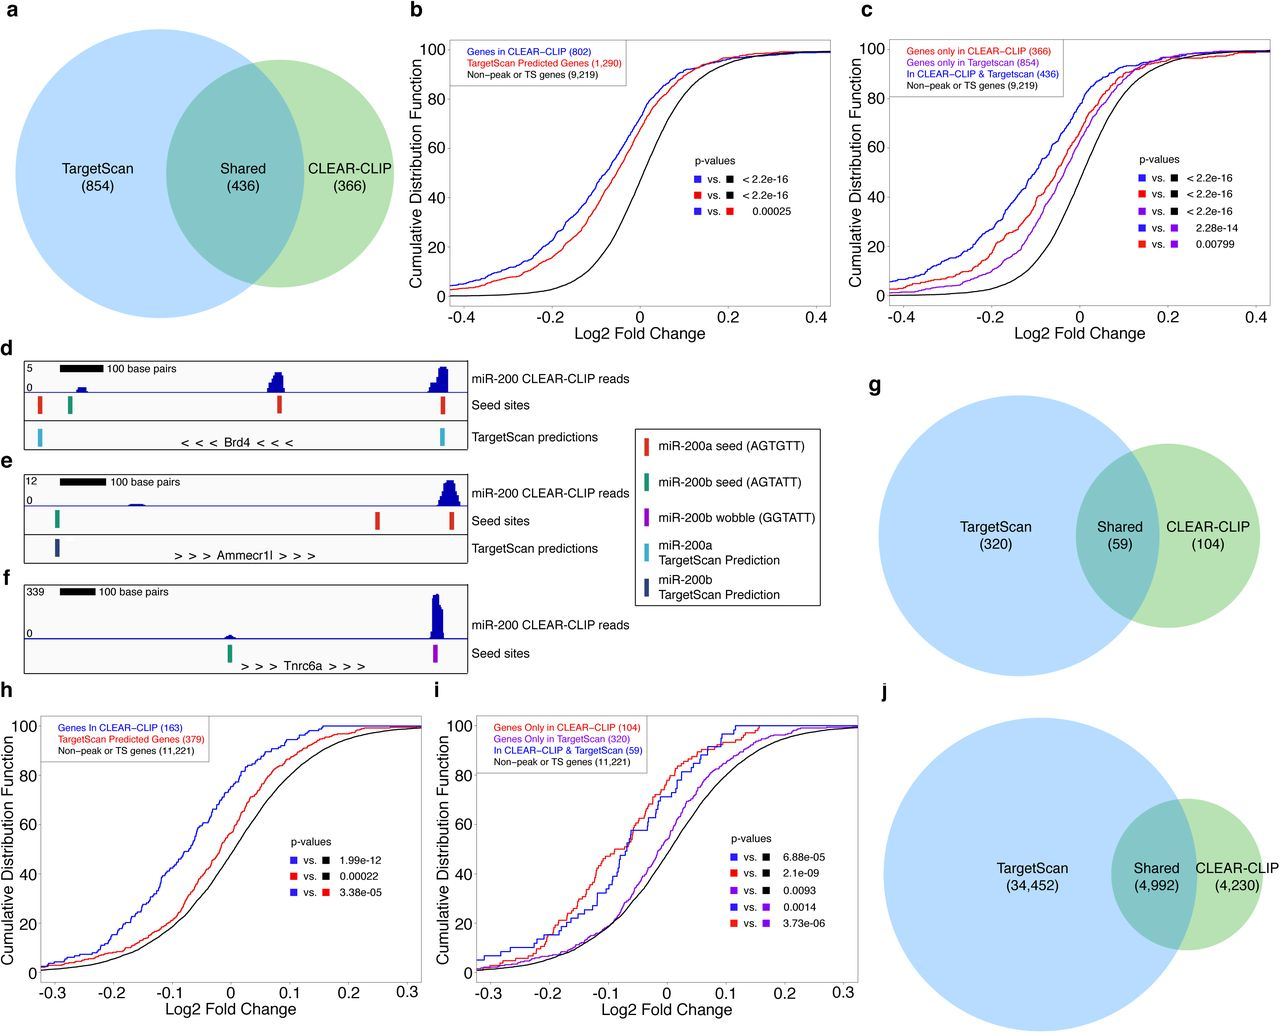 Comparison of performance between CLEAR-CLIP captured and TargetScan predicted targets. a , Overlap between miR-200 CLEAR-CLIP genes with a 7mer or 8mer and TargetScan predictions for miR-200s. b , Log2 fold change in gene expression upon induction of the miR-200b cluster is shown for CLEAR-CLIP genes with a 7mer or 8mer and TargetScan predicted conserved sites as compared to genes without a miR-200 high confidence site and not predicted as conserved by TargetScan. c , Log2 fold change in gene expression upon induction of the miR-200b cluster is shown for genes only in CLEAR-CLIP, only predicted by TargetScan or in CLEAR-CLIP and TargetScan as compared to genes without a miR-200 high confidence site and not predicted by TargetScan. d , A portion of the Brd4 3'UTR is shown with miR-200 CLEAR-CLIP reads (top track), miR-200 seed sites (middle track) and TargetScan sites (bottom track) indicated. e , A portion of the Ammecr1l 3'UTR is shown with miR-200 CLEAR-CLIP reads (top track), miR-200 seed sites (middle track) and TargetScan sites (bottom track) indicated. f , A portion of the Tnrc6a 3'UTR is shown with miR-200 CLEAR-CLIP reads (top track) and miR-200 seed sites (bottom track) indicated. g , Overlap between miR-205 CLEAR-CLIP genes with a 7mer or 8mer and TargetScan predicted conserved sites for miR-205. h , Log2 fold change in gene expression upon induction of miR-205 is shown for CLEAR-CLIP genes with a 7mer or 8mer and TargetScan predicted sites as compared to genes without a miR-205 high confidence site and not predicted as conserved by TargetScan. i , Log2 fold change in gene expression upon induction of miR-205 is shown for genes only in CLEAR-CLIP, only predicted by TargetScan or in CLEAR-CLIP and TargetScan as compared to genes without a miR-205 high confidence site and not predicted by TargetScan. j , Overlap between all miRNA:mRNA CLEAR-CLIP interactions with a 7mer or 8mer and all conserved TargetScan predictions. For all CDF plots the number of genes is shown in parenthesis and p-values were calculated using the Kolmogorov–Smirnov test.